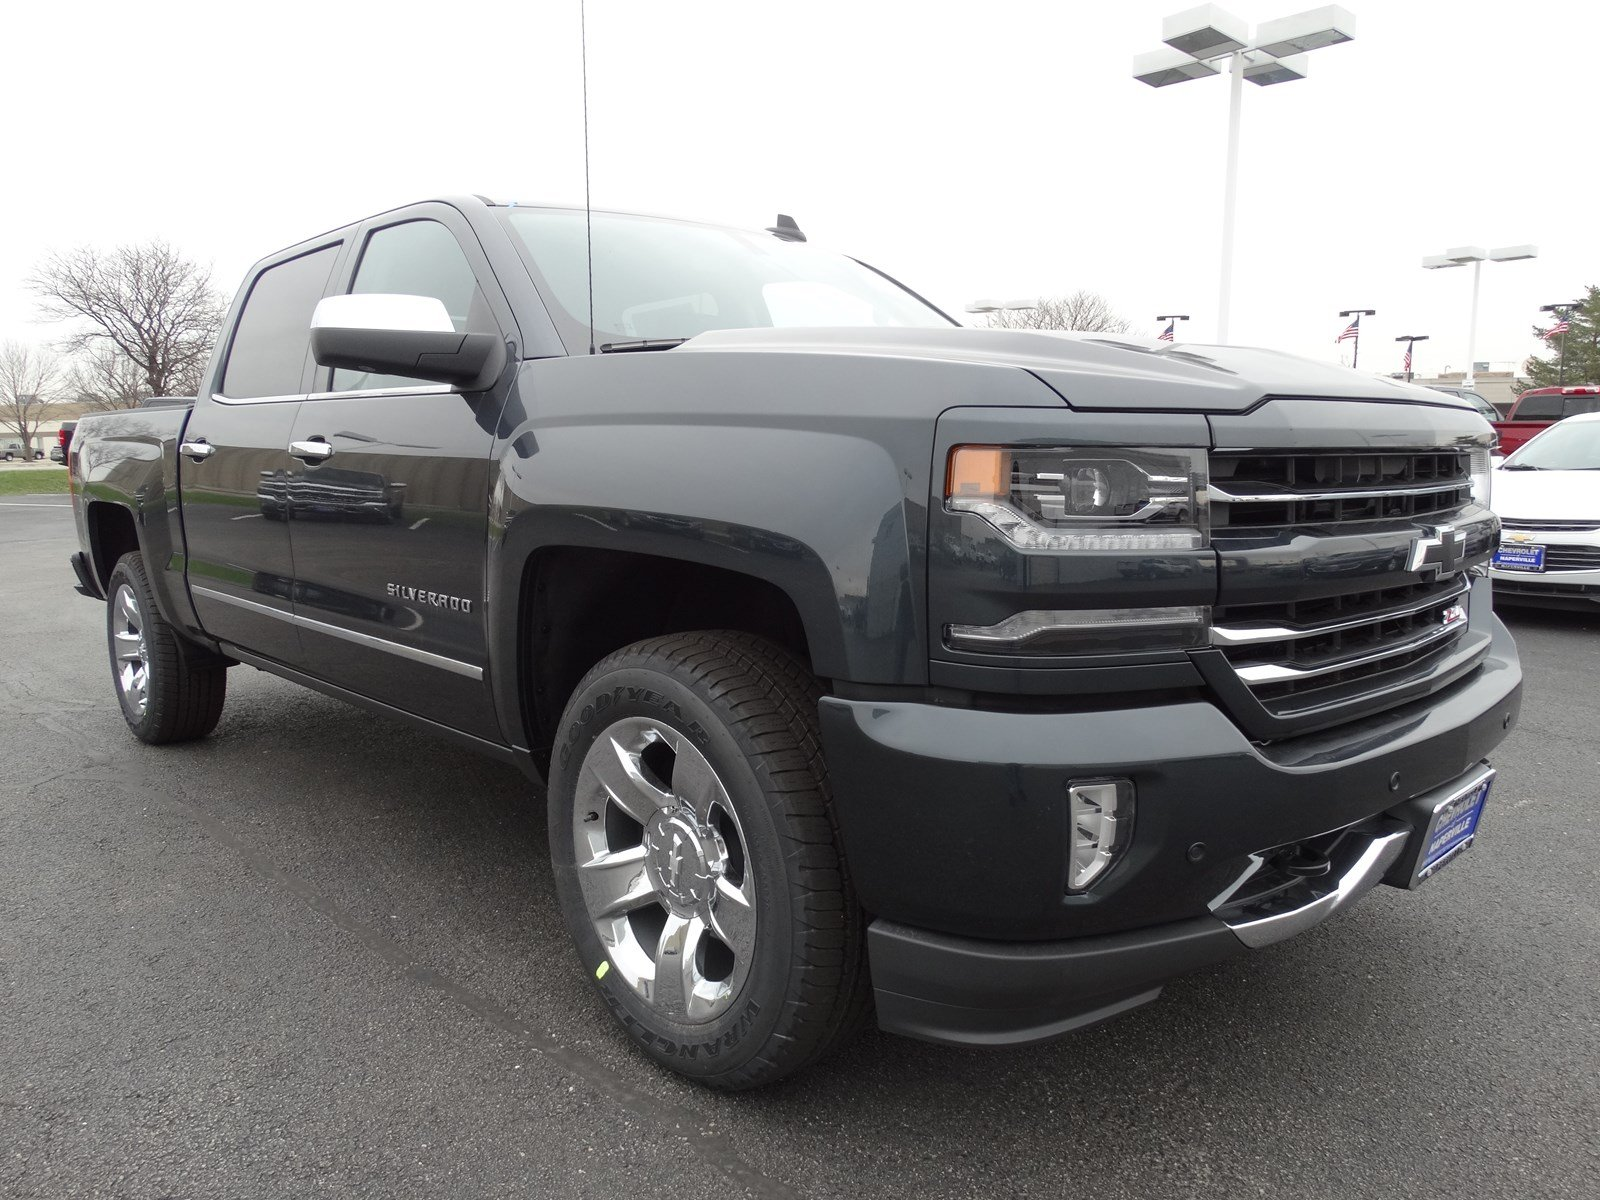 new 2017 chevrolet silverado 1500 ltz crew cab pickup in naperville t6284 chevrolet of naperville. Black Bedroom Furniture Sets. Home Design Ideas